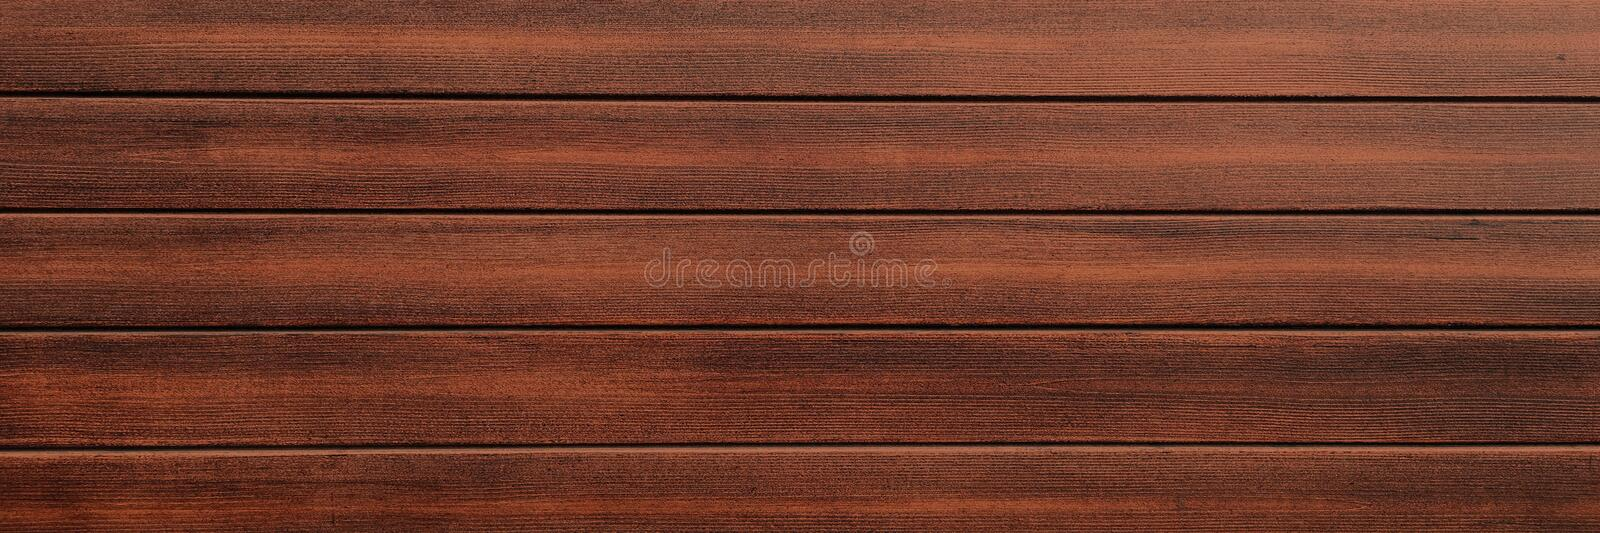 Wood texture background, brown wood planks. Grunge wood wall pattern. stock photography